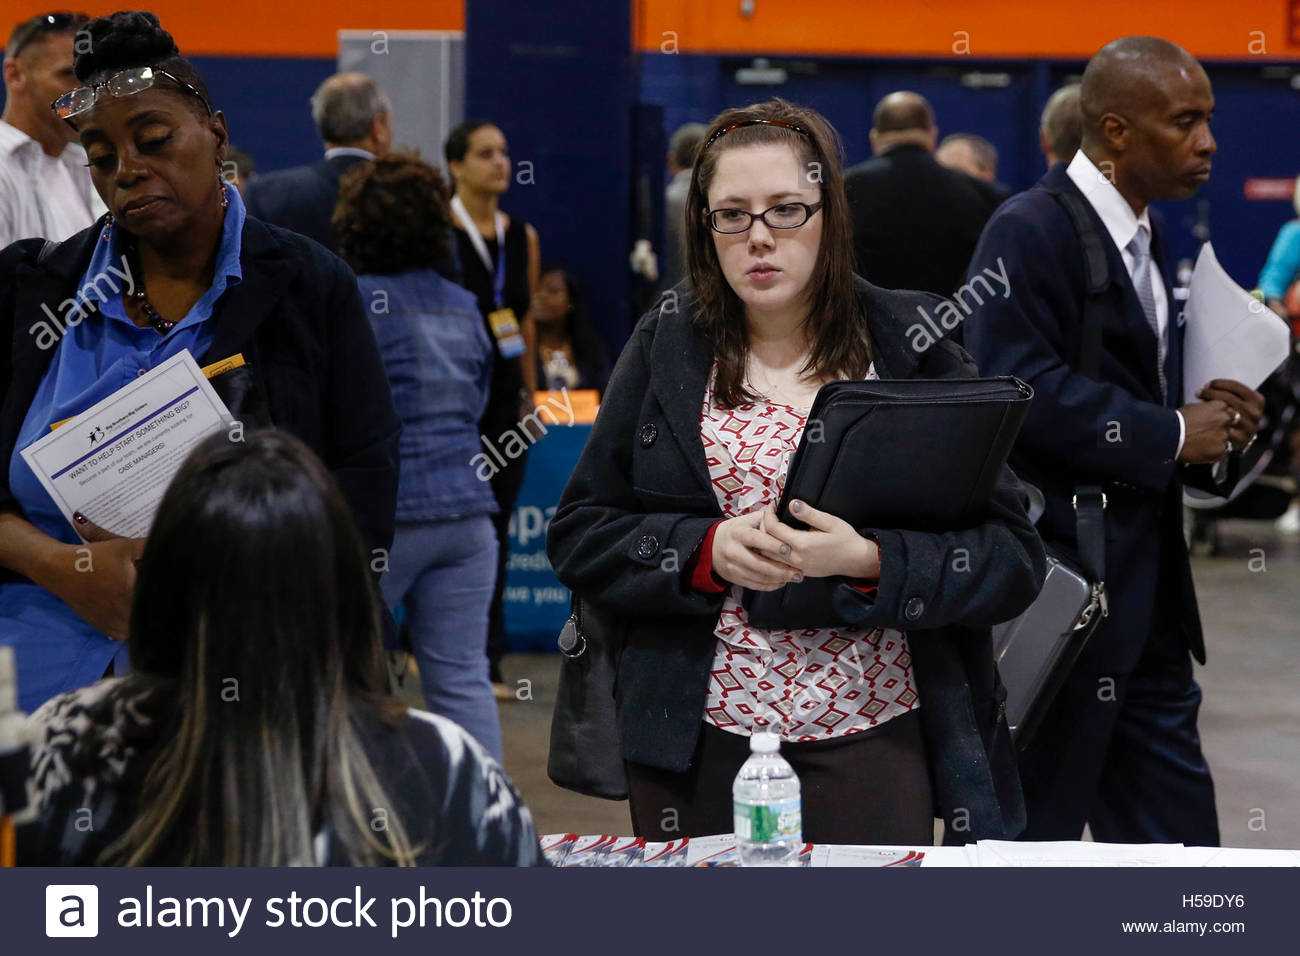 people speak job recruiters at the nassau county mega job people speak job recruiters at the nassau county mega job fair at nassau veterans memorial coliseum in uniondale new york 7 2014